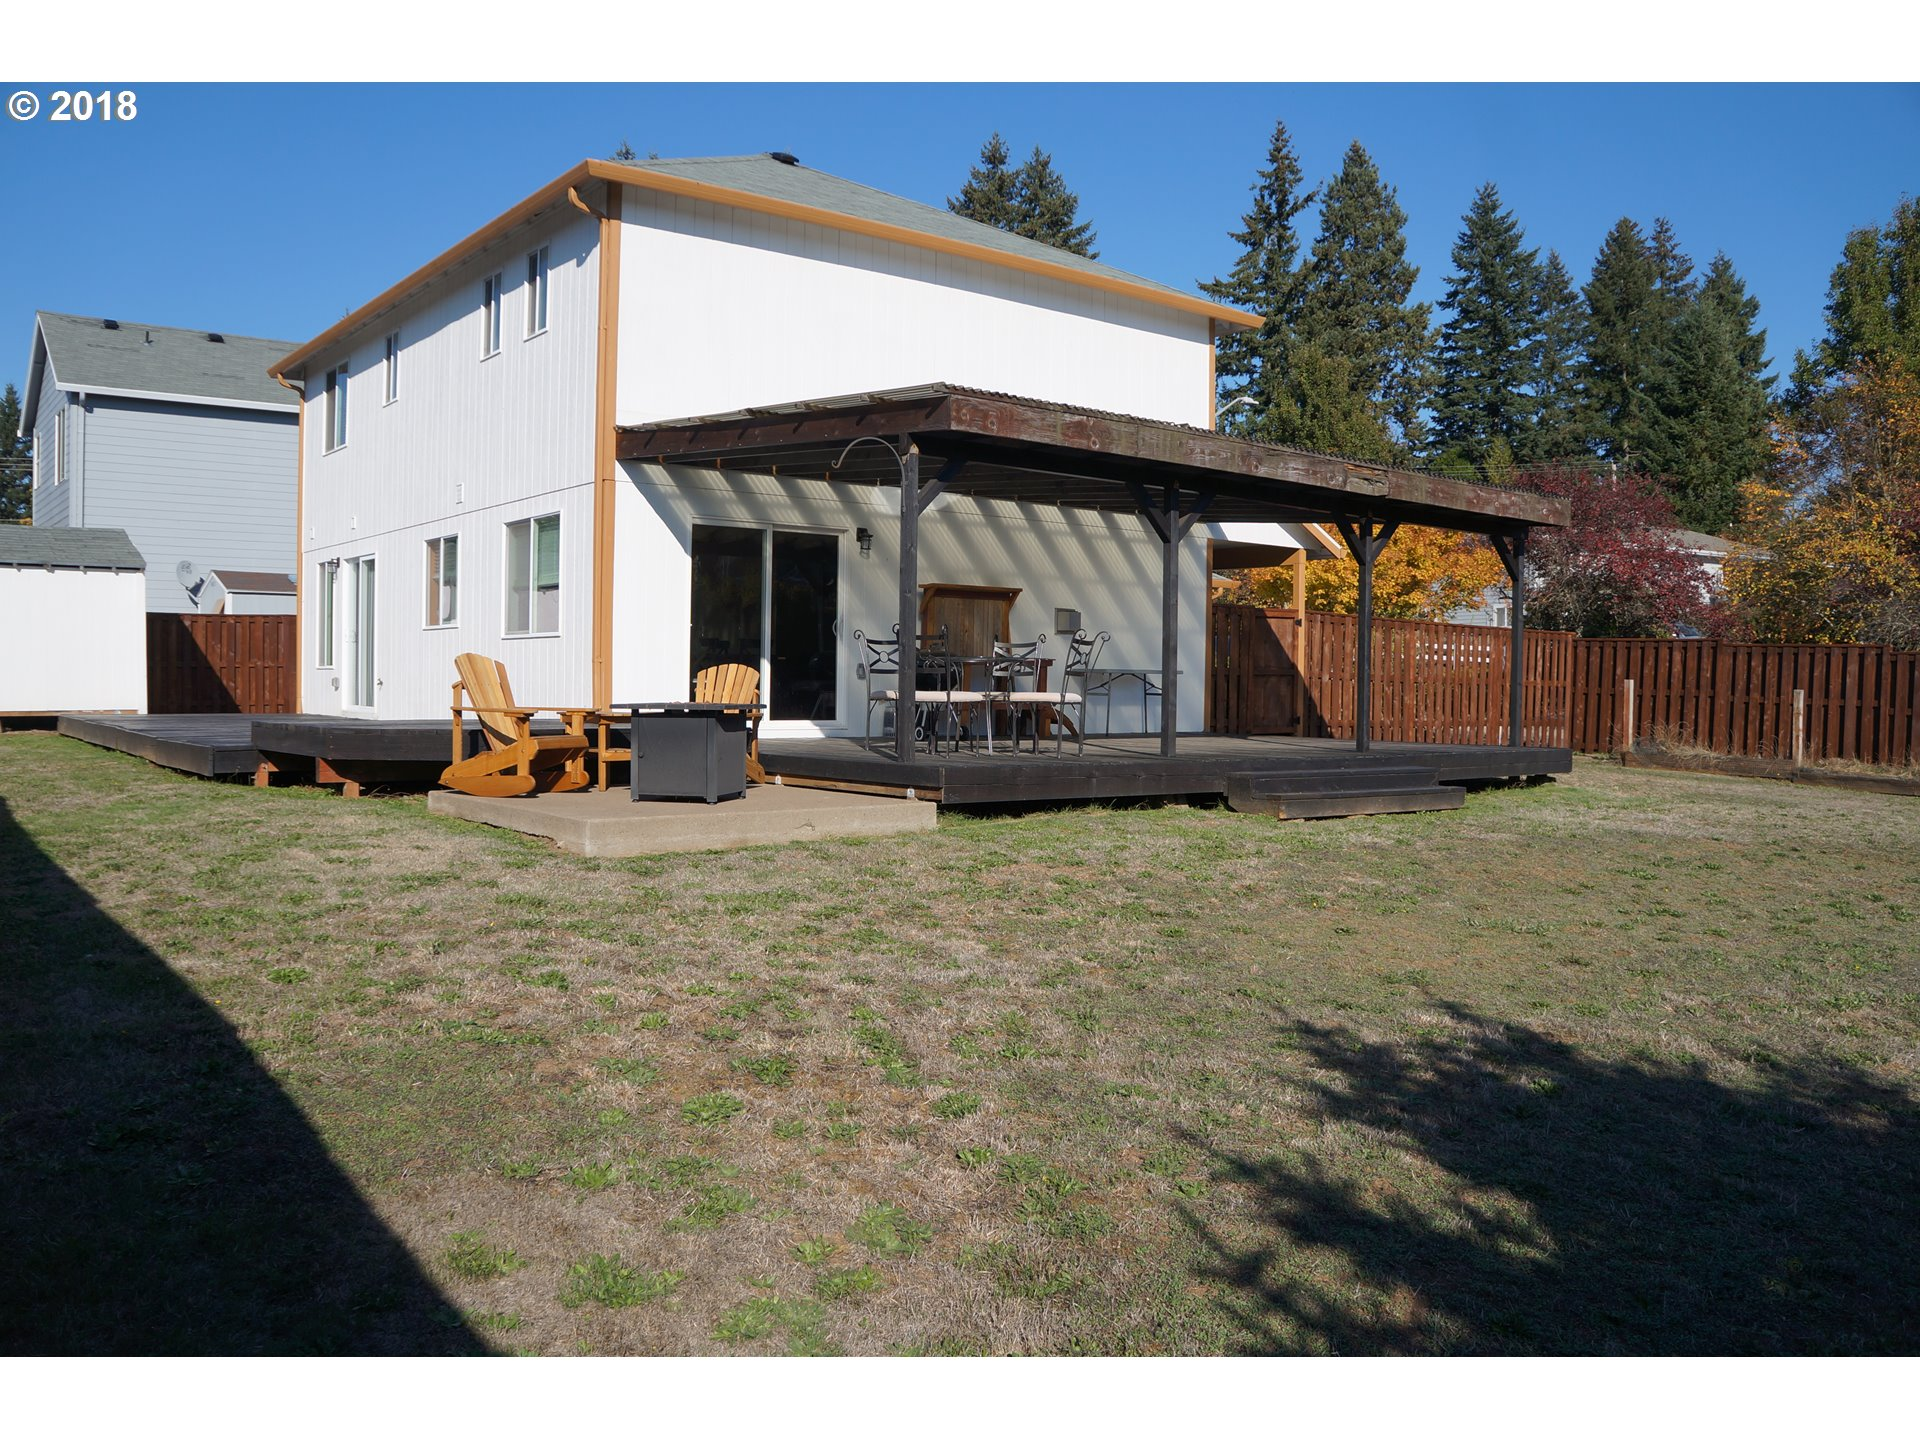 16267 WINSTON DR Oregon City, OR 97045 - MLS #: 18589391